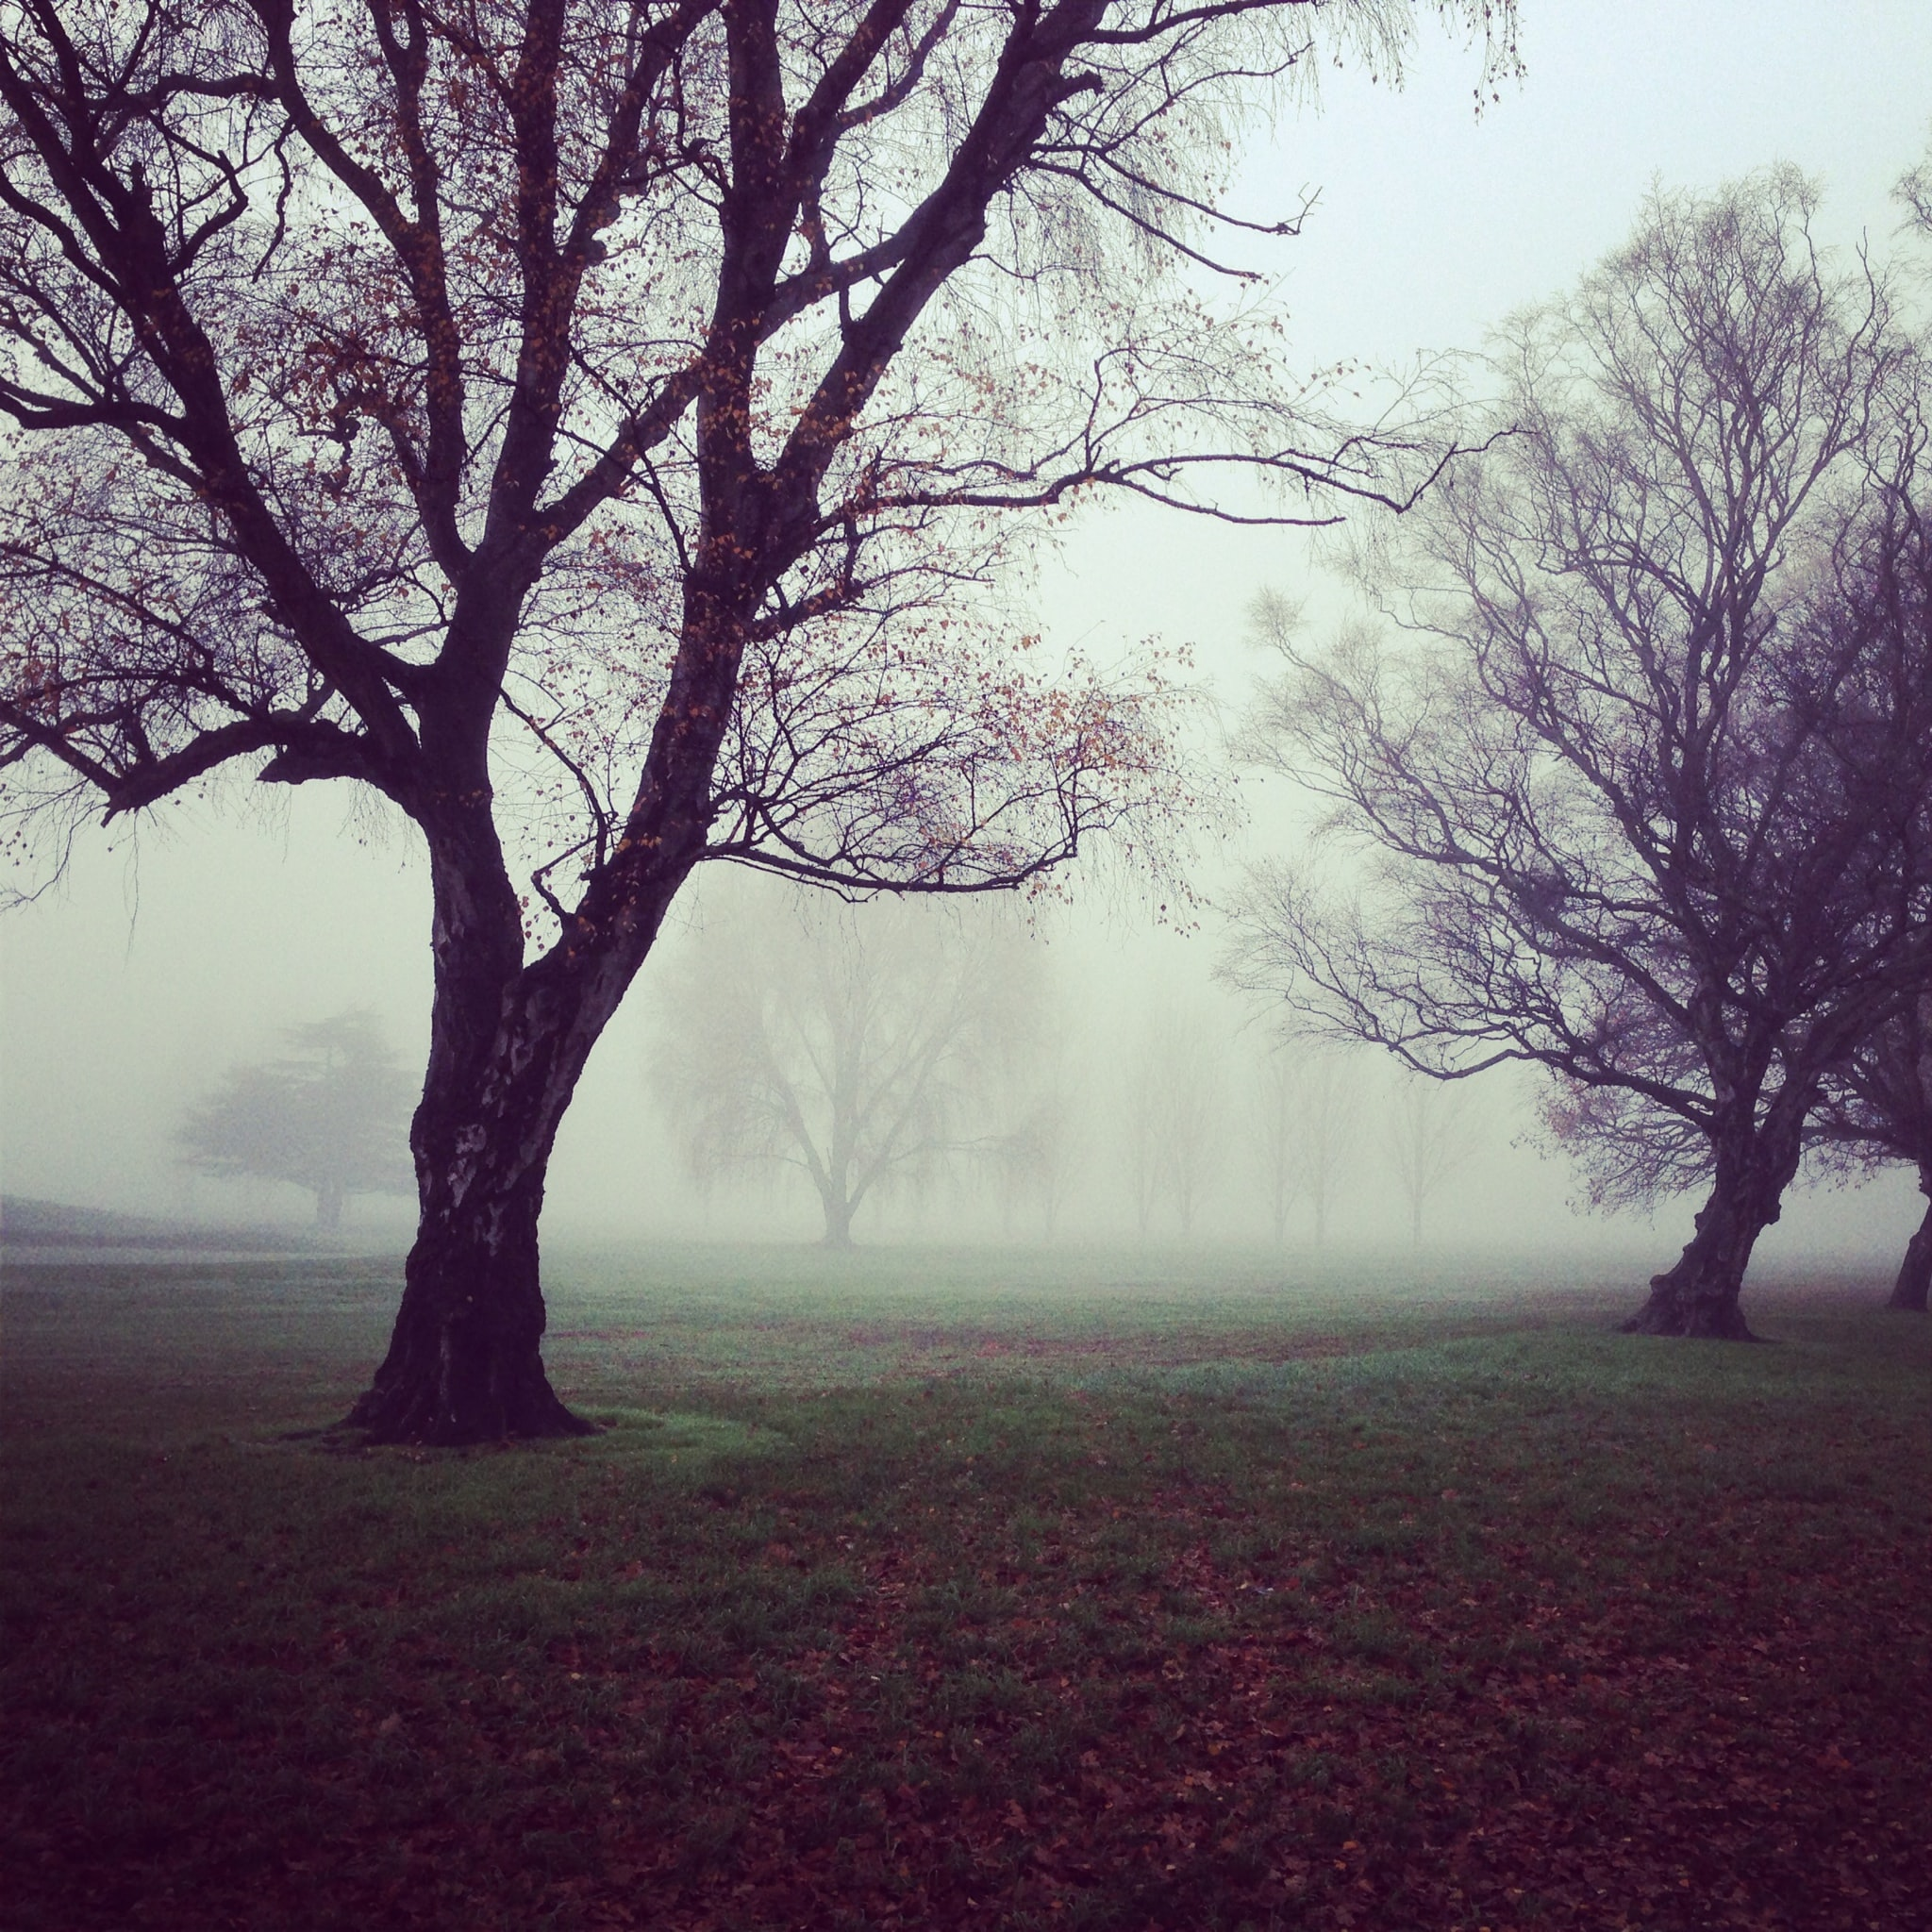 Quiet misty morning in a park